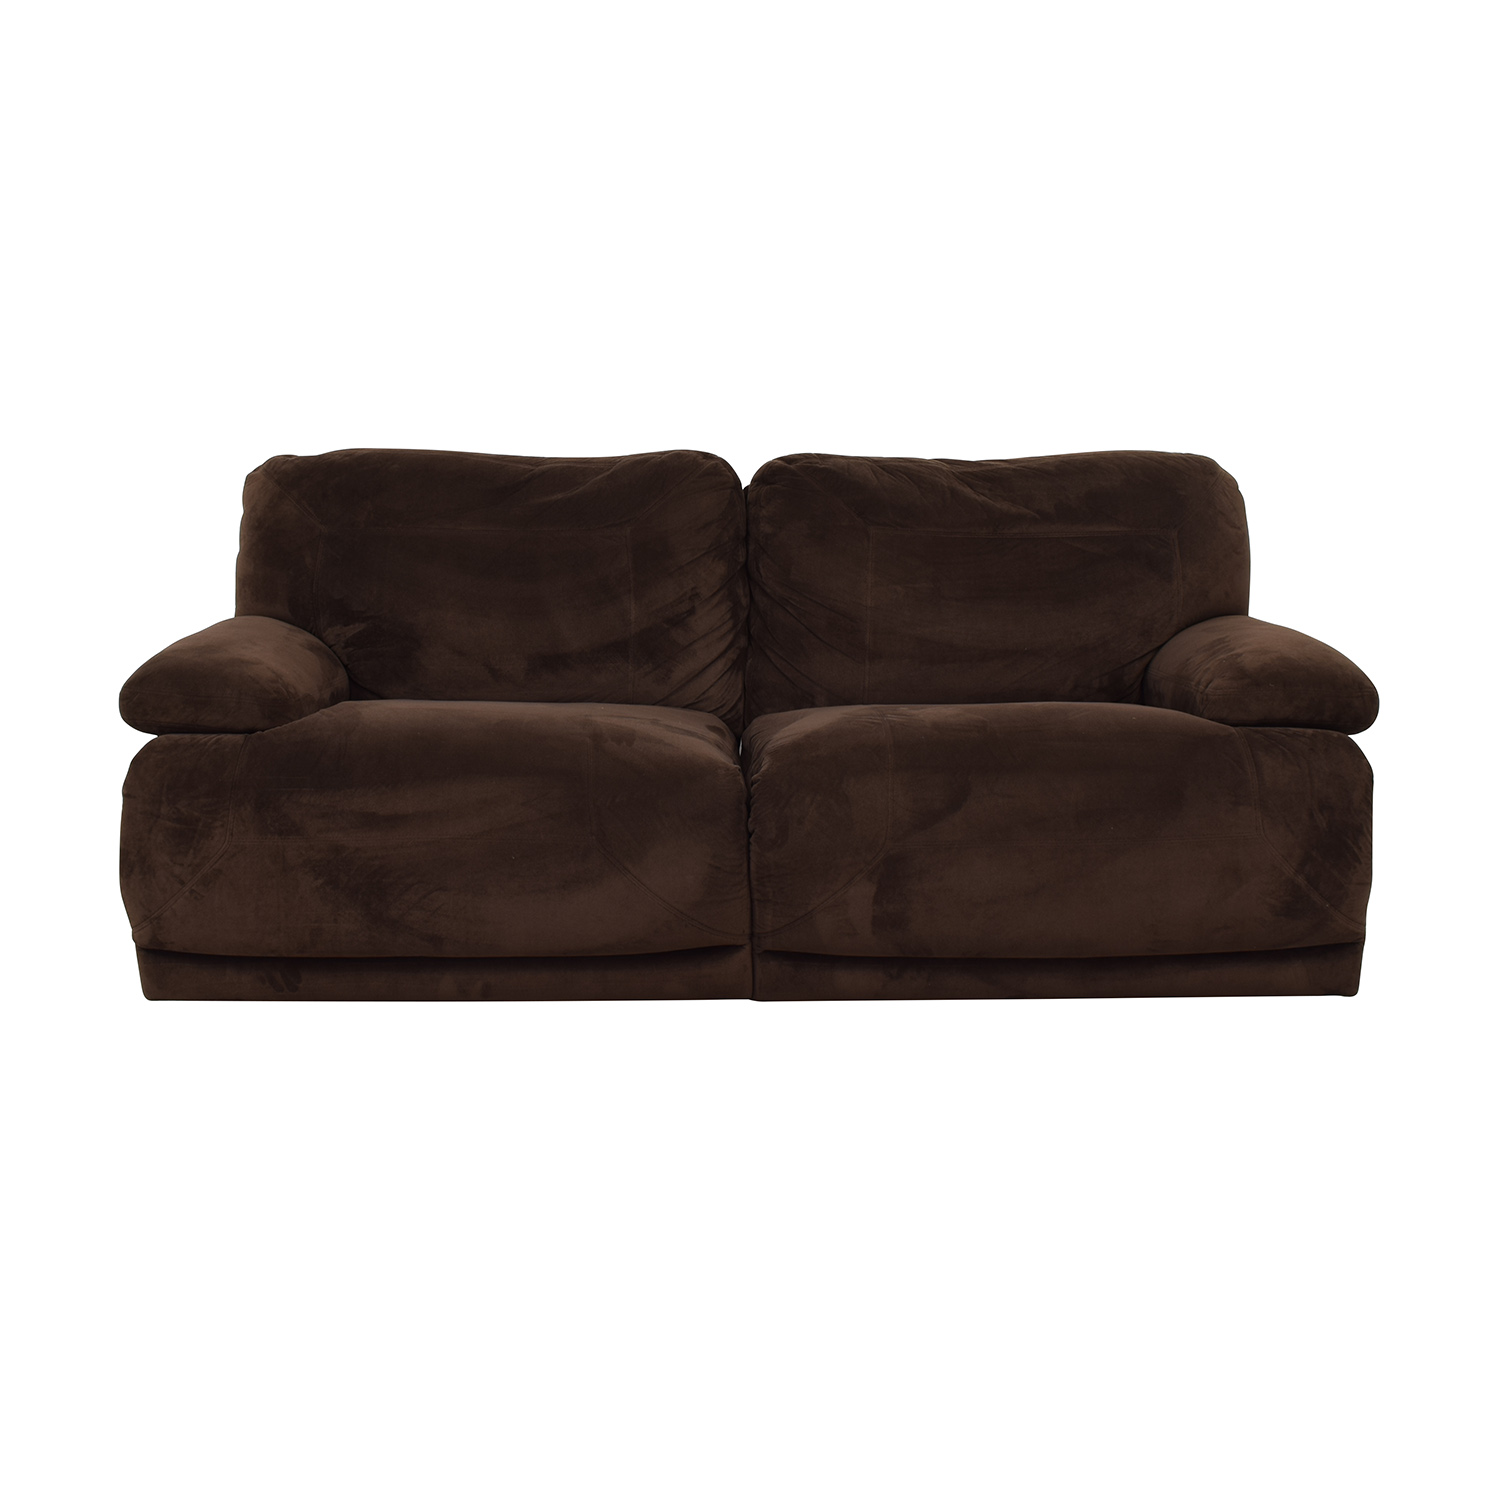 Macy's Macy's Brown Recliner Couch nj